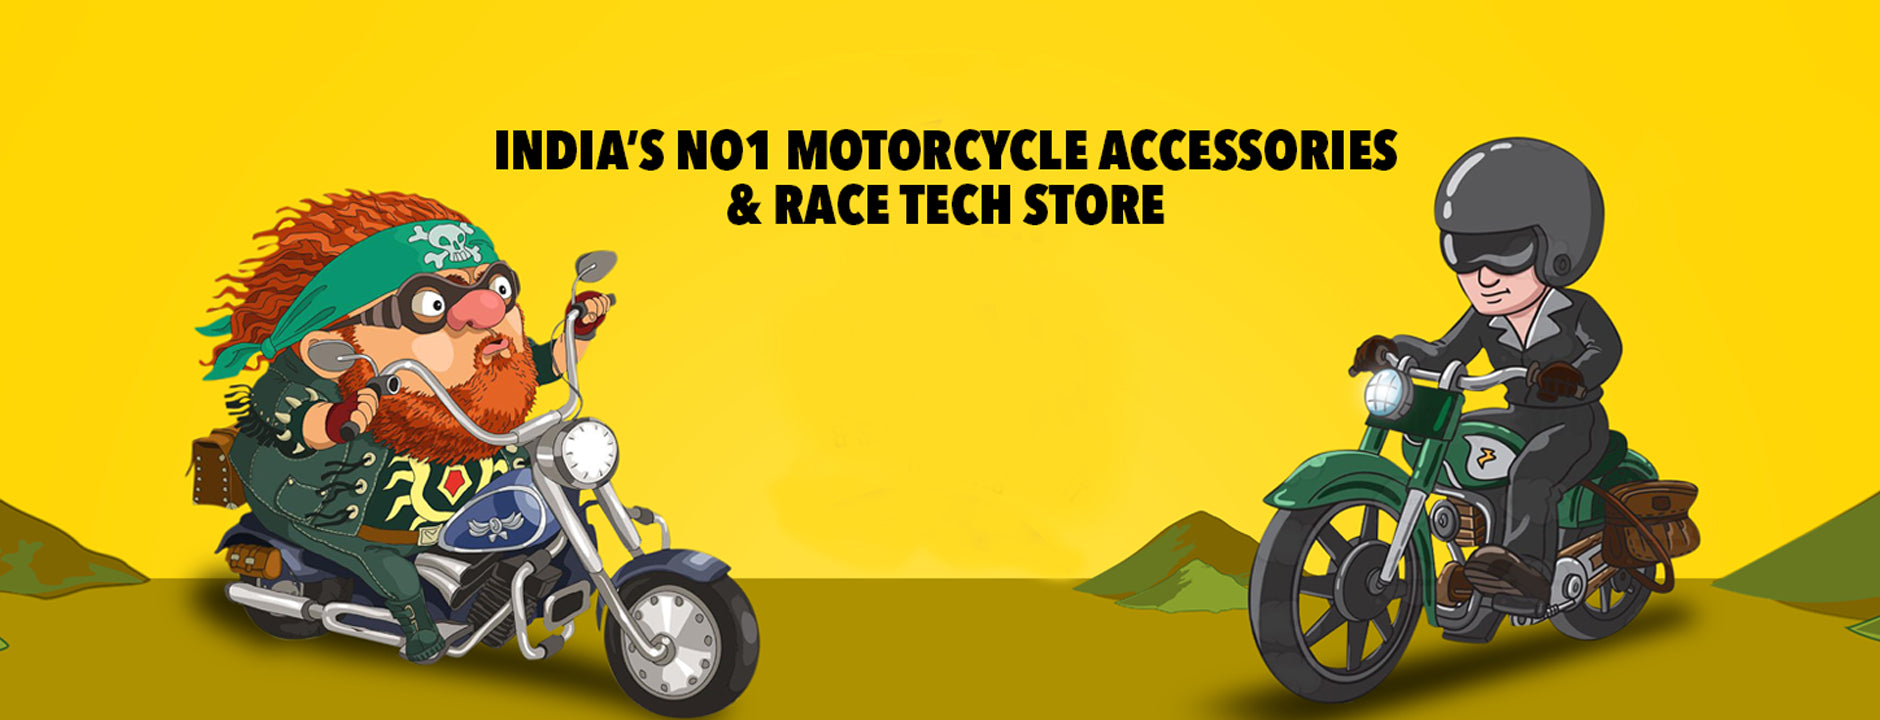 Motorcycle Accessories And Race Tech Store In India Bandidos Pitstop Diagram Royal Enfield Electra Wiring Addition Bullet